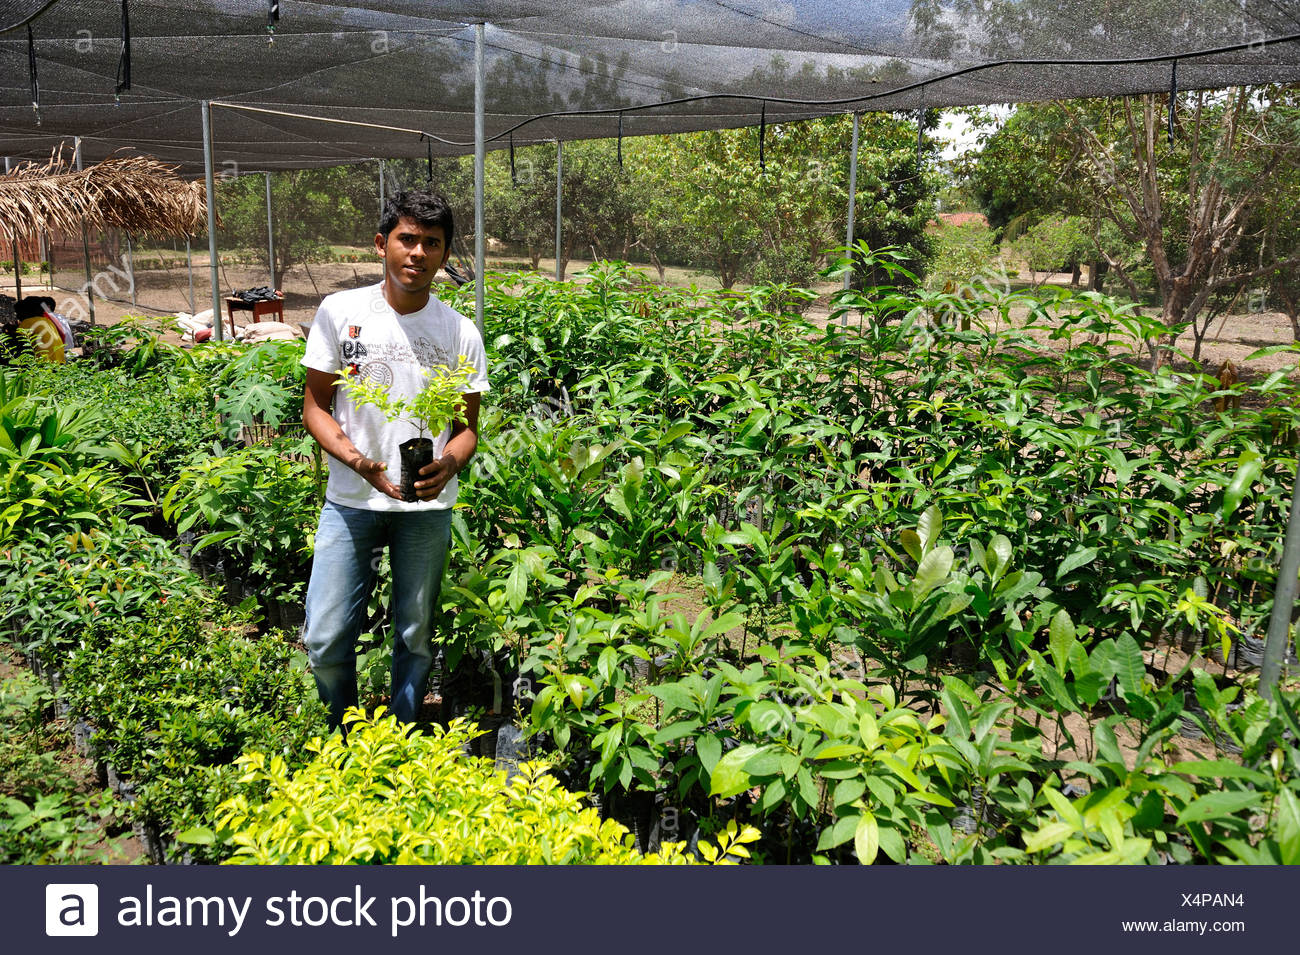 Young man with a seedling in a nursery garden, Maranhao, Brazil, South America, Latin America - Stock Image